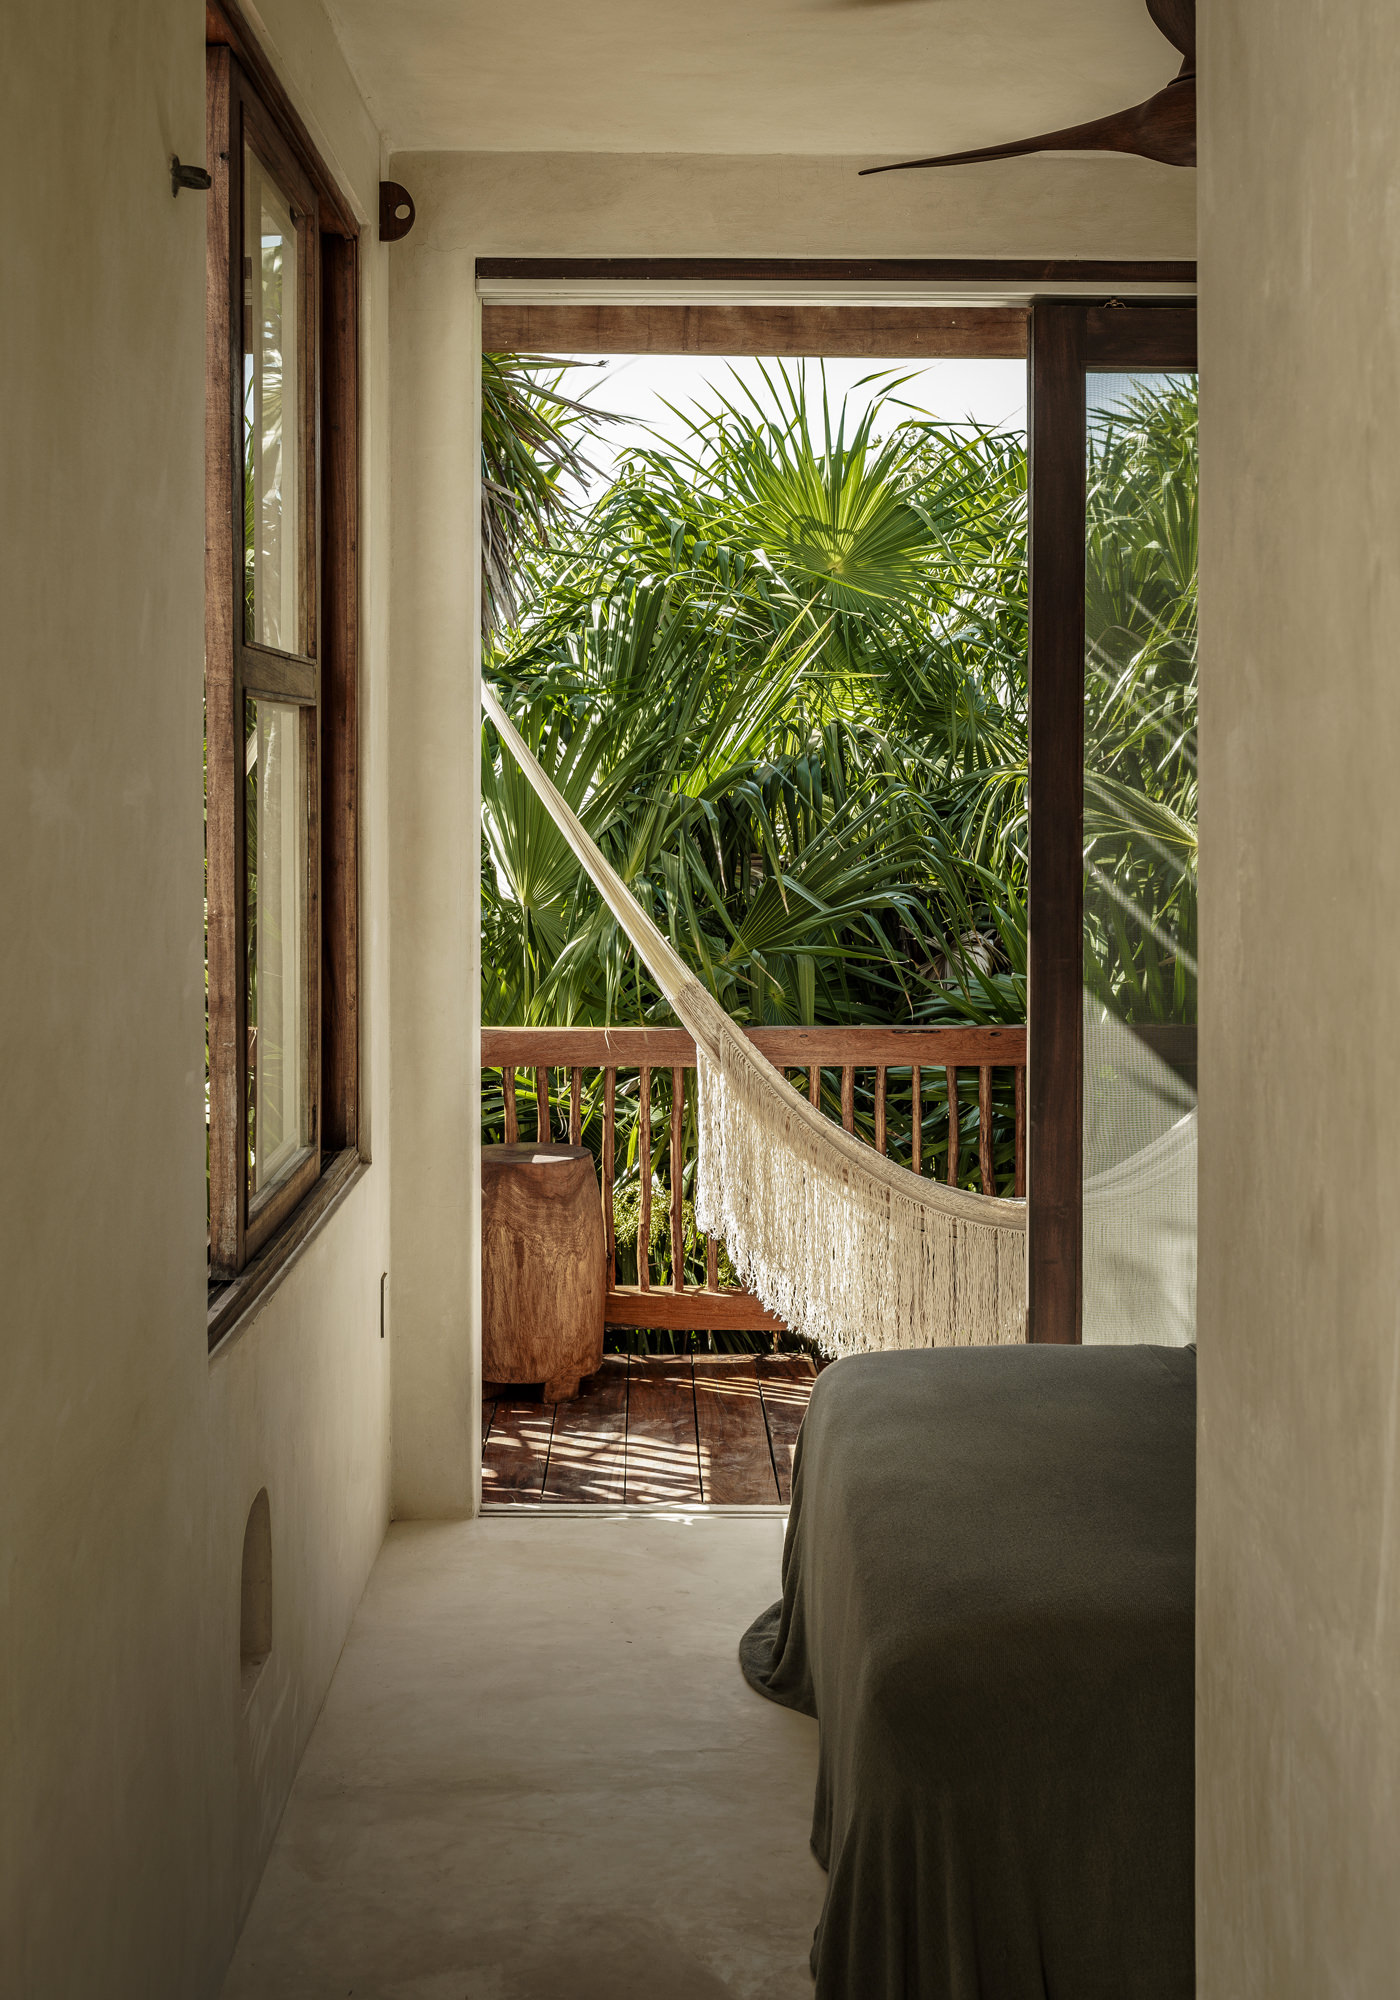 Location Rental Maison Tulum Treehouse Yucatan Mexique